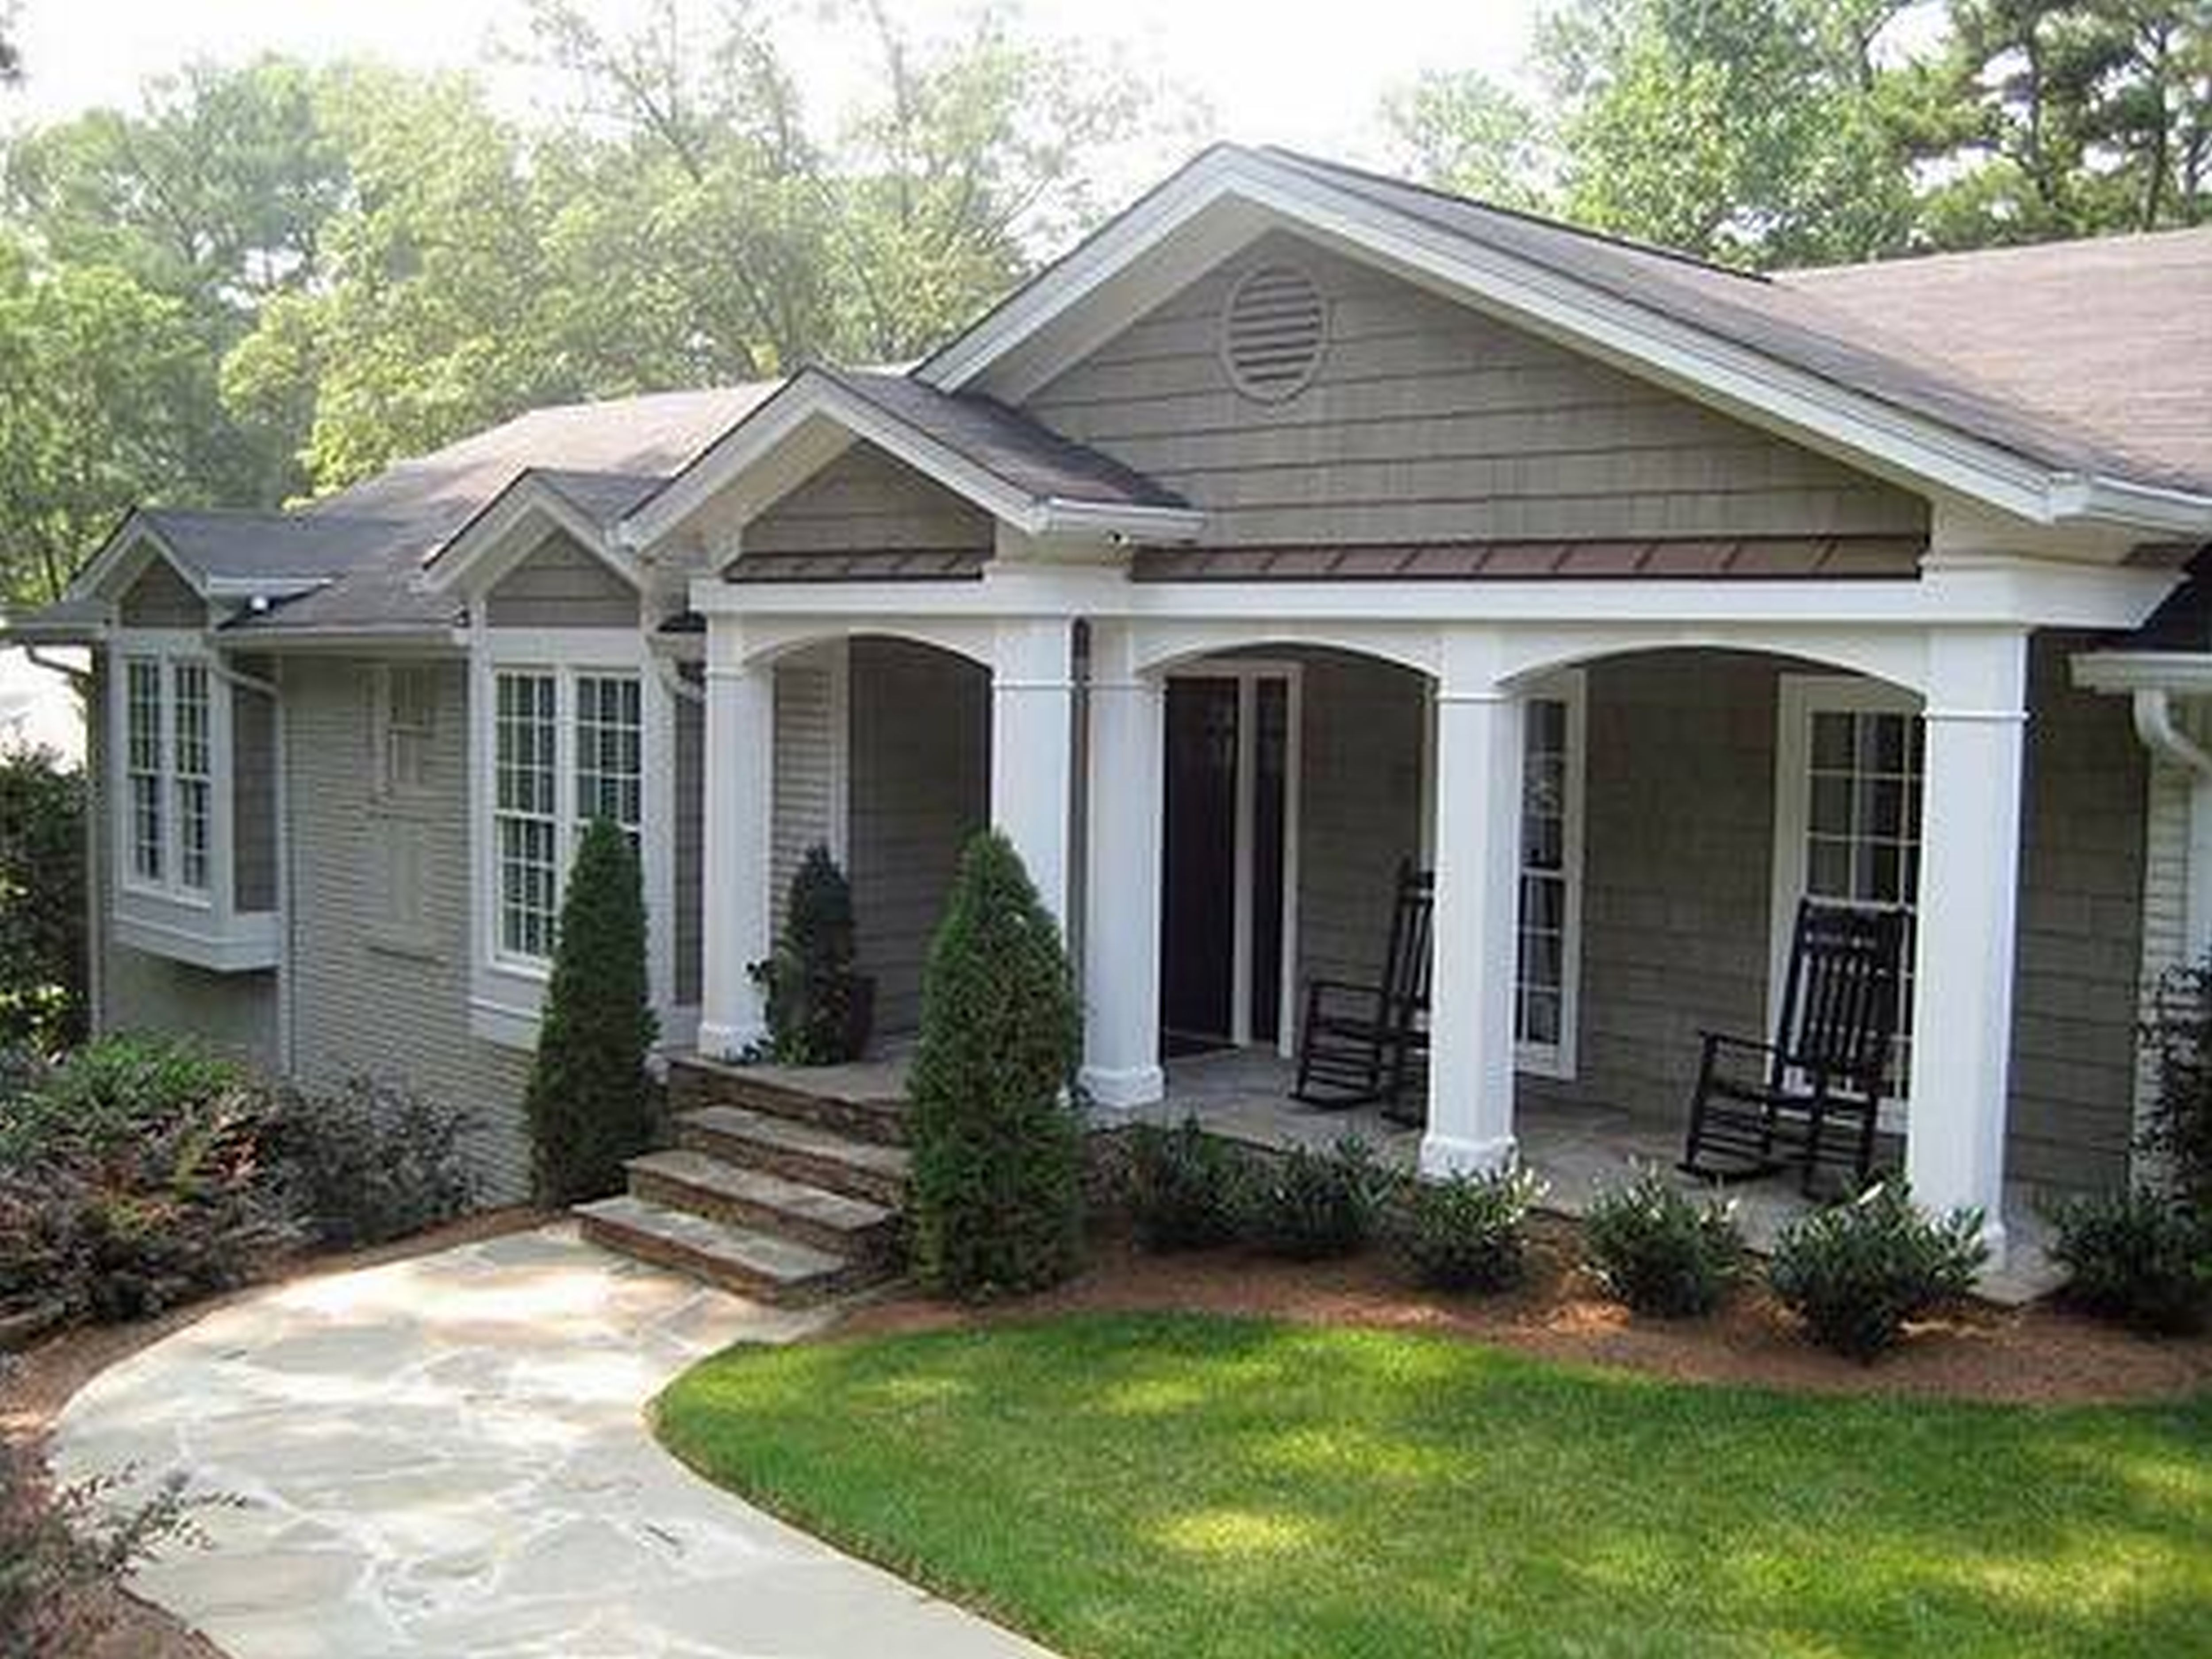 astounding front deck ideas for ranch style homes. Exterior Ranch Home Renovations Gallery  Style Makeover Amazing House Front Porch